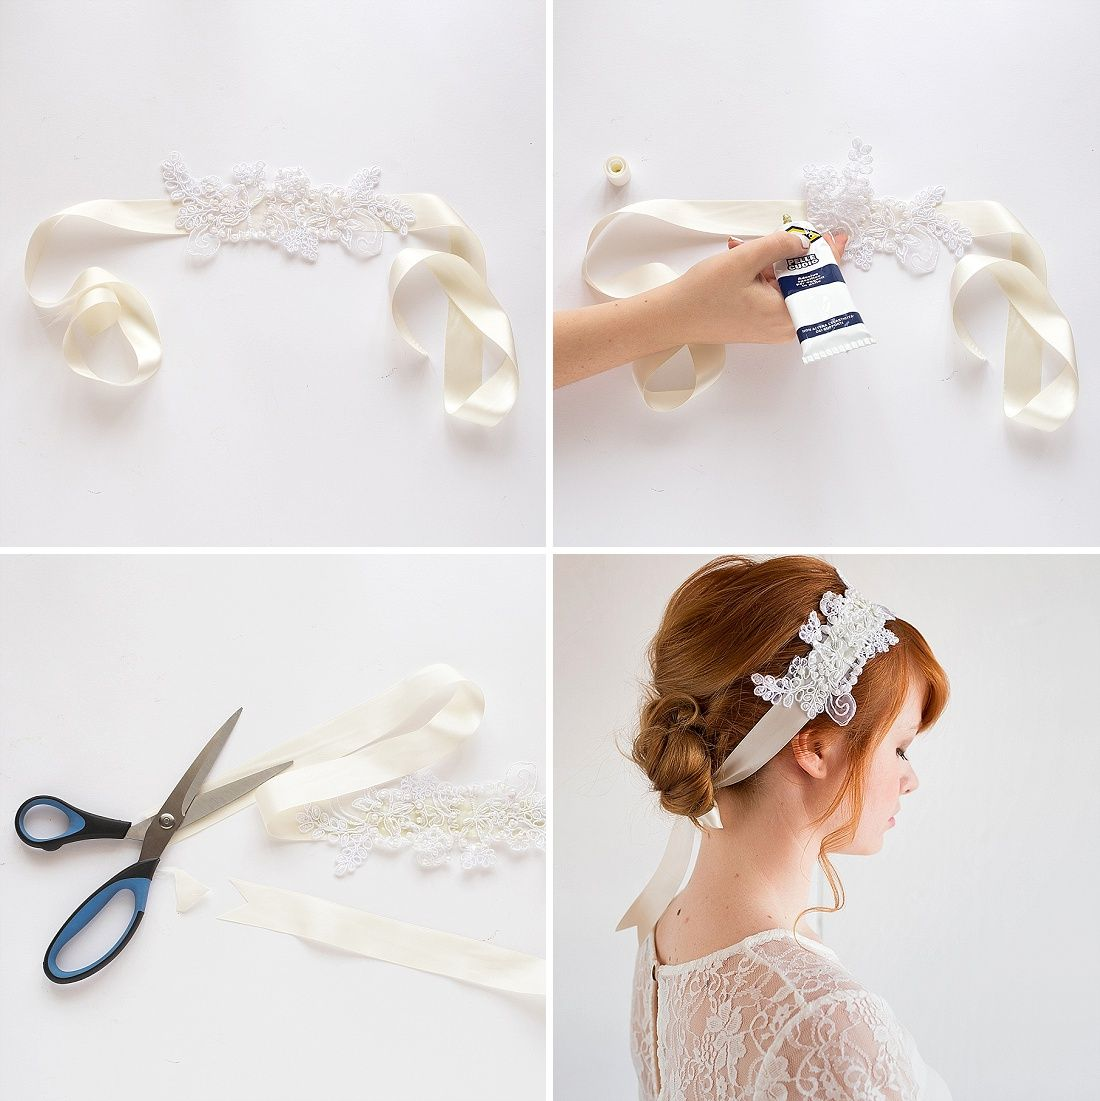 Diy hair accessories for weddings - How To Make A Gorgeous Wedding Hair Accessory In Less Than 5 Minutes